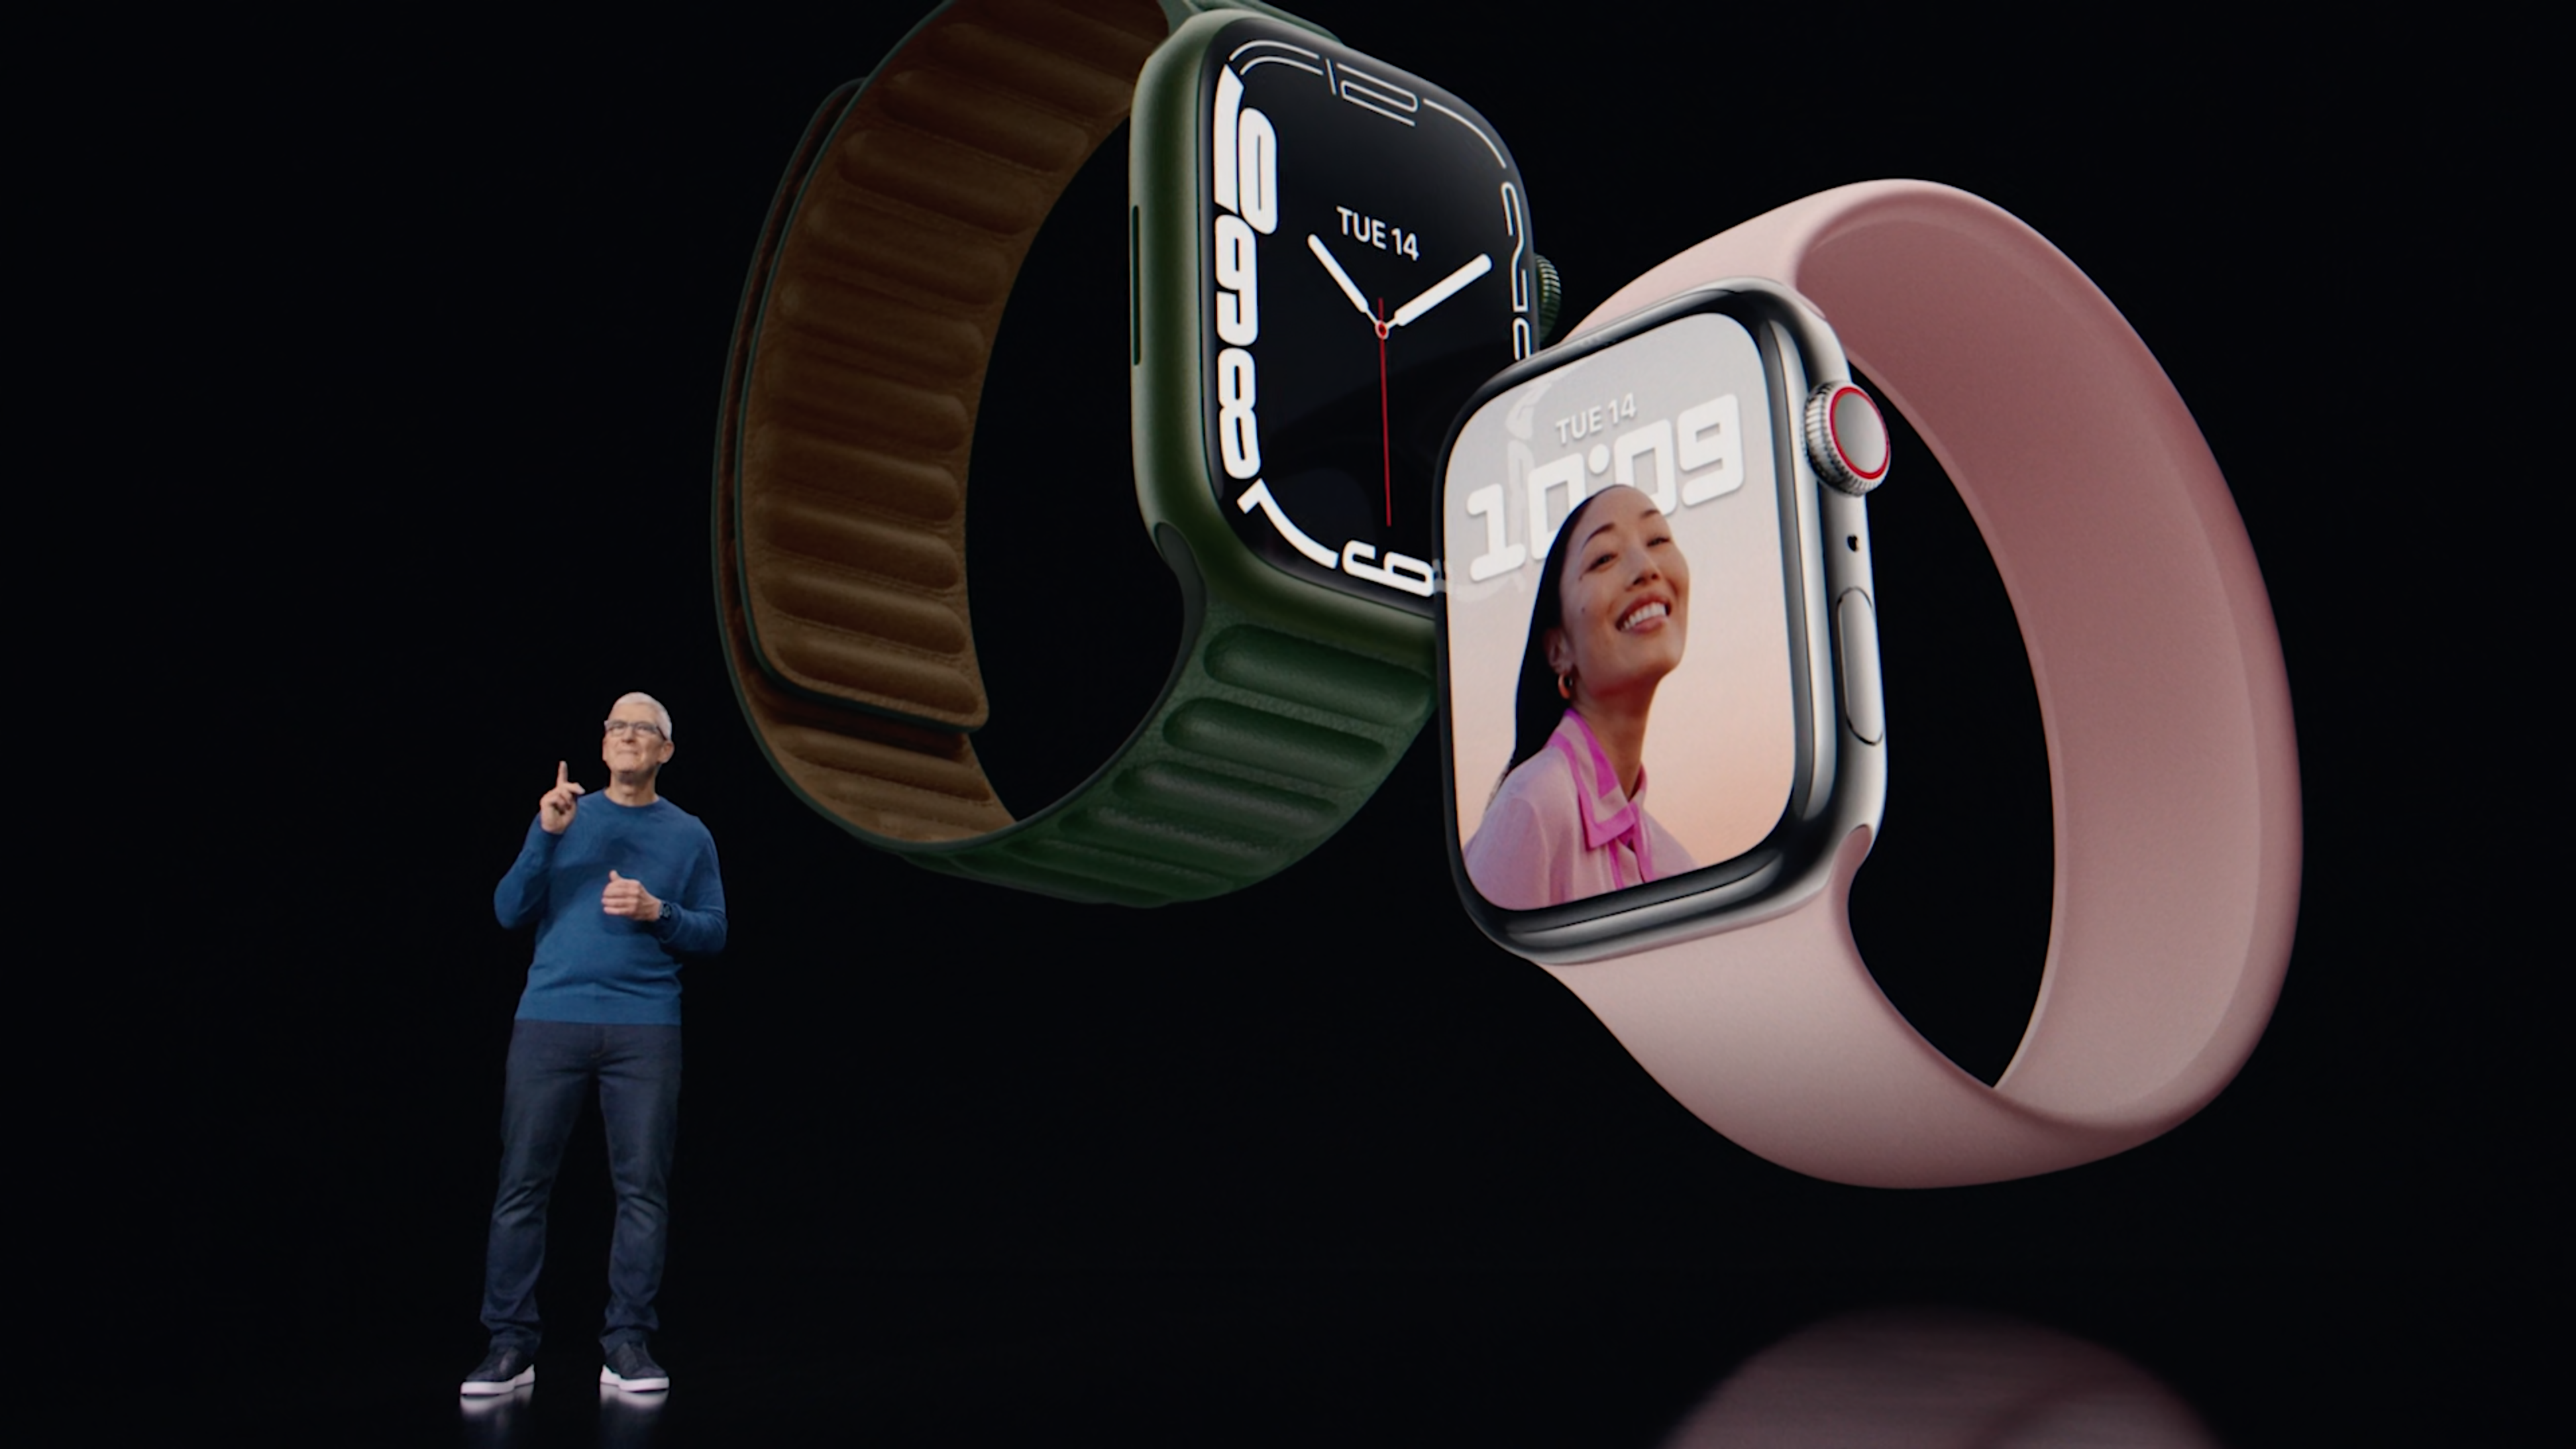 Apple announcements September 14 2021: iPhone 13, new iPads, Apple Watch Series 7, and more